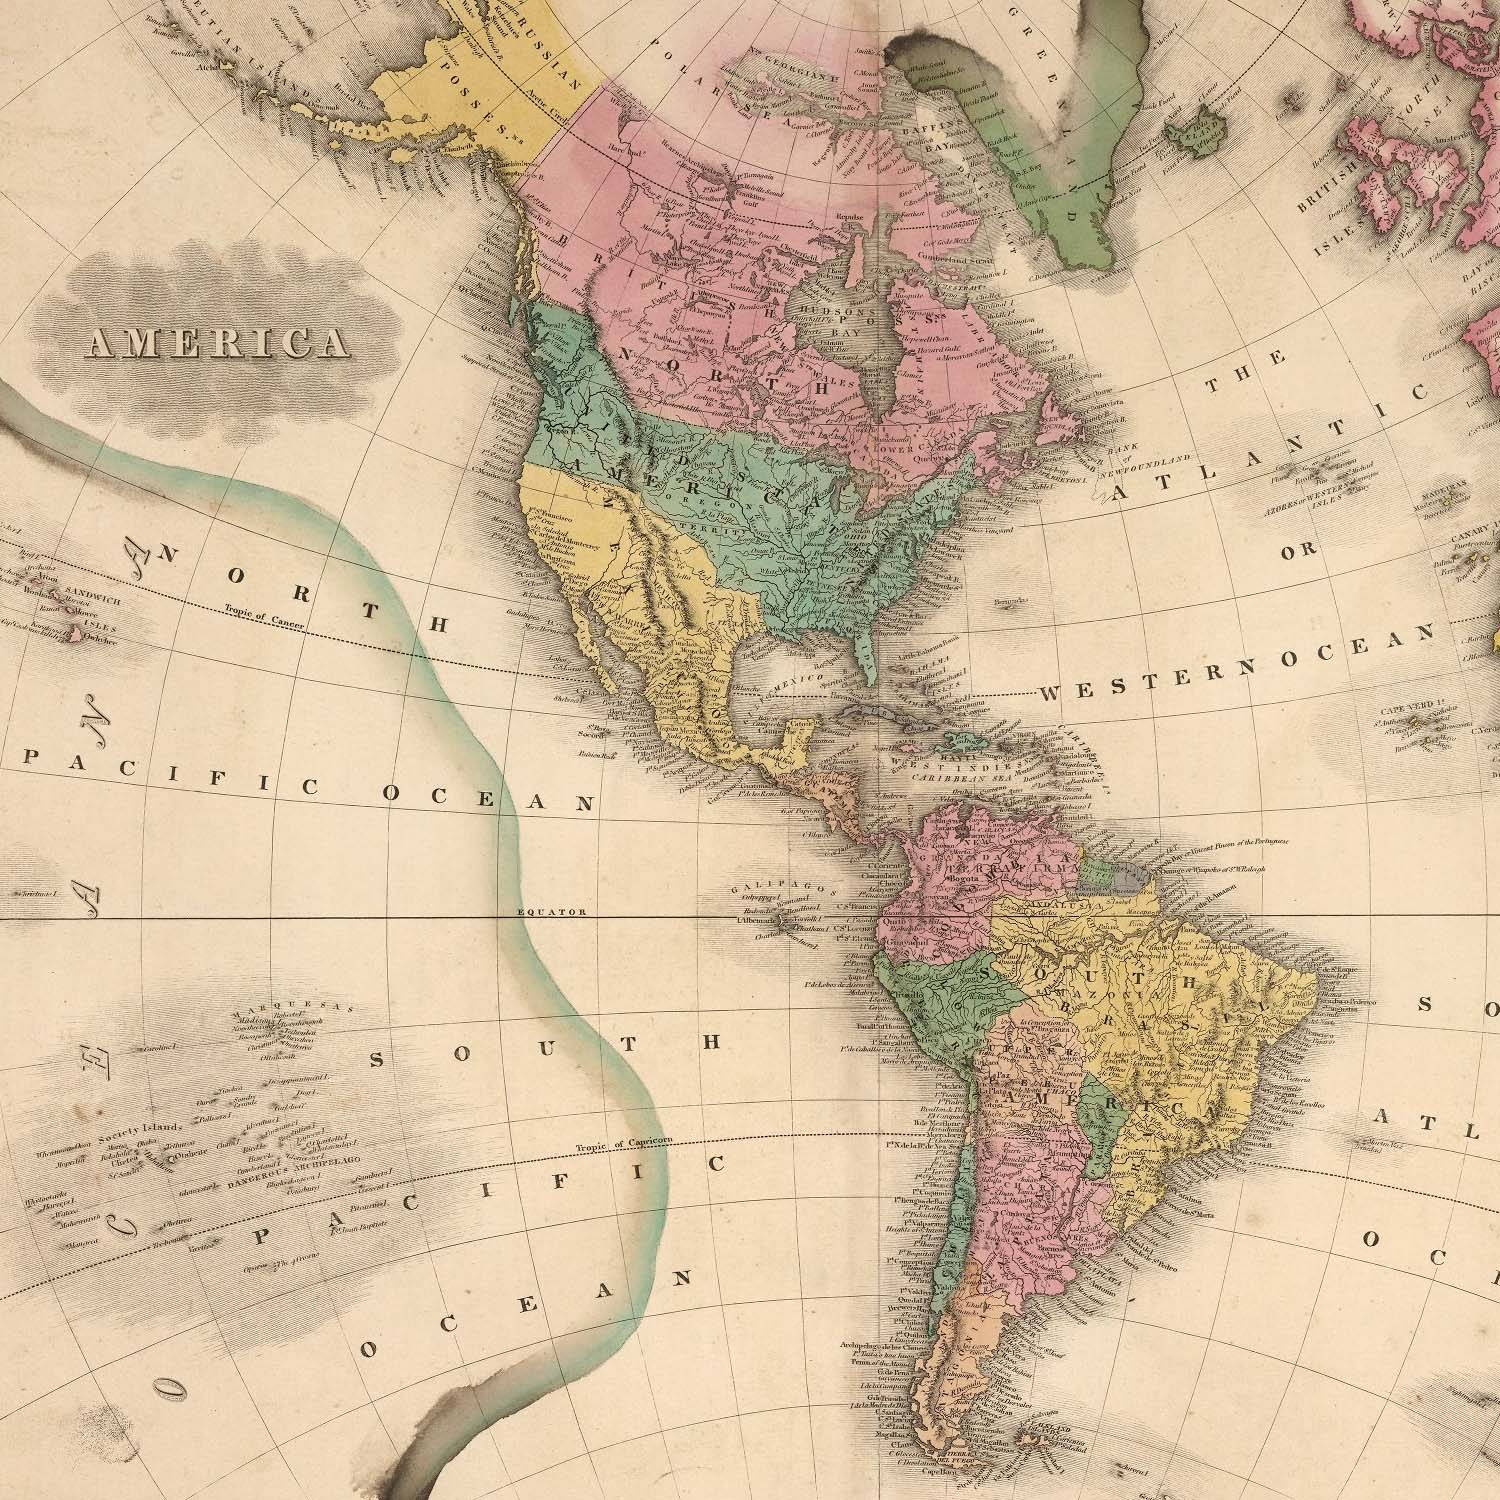 David Rumsey Historical Map Collection | The Collection